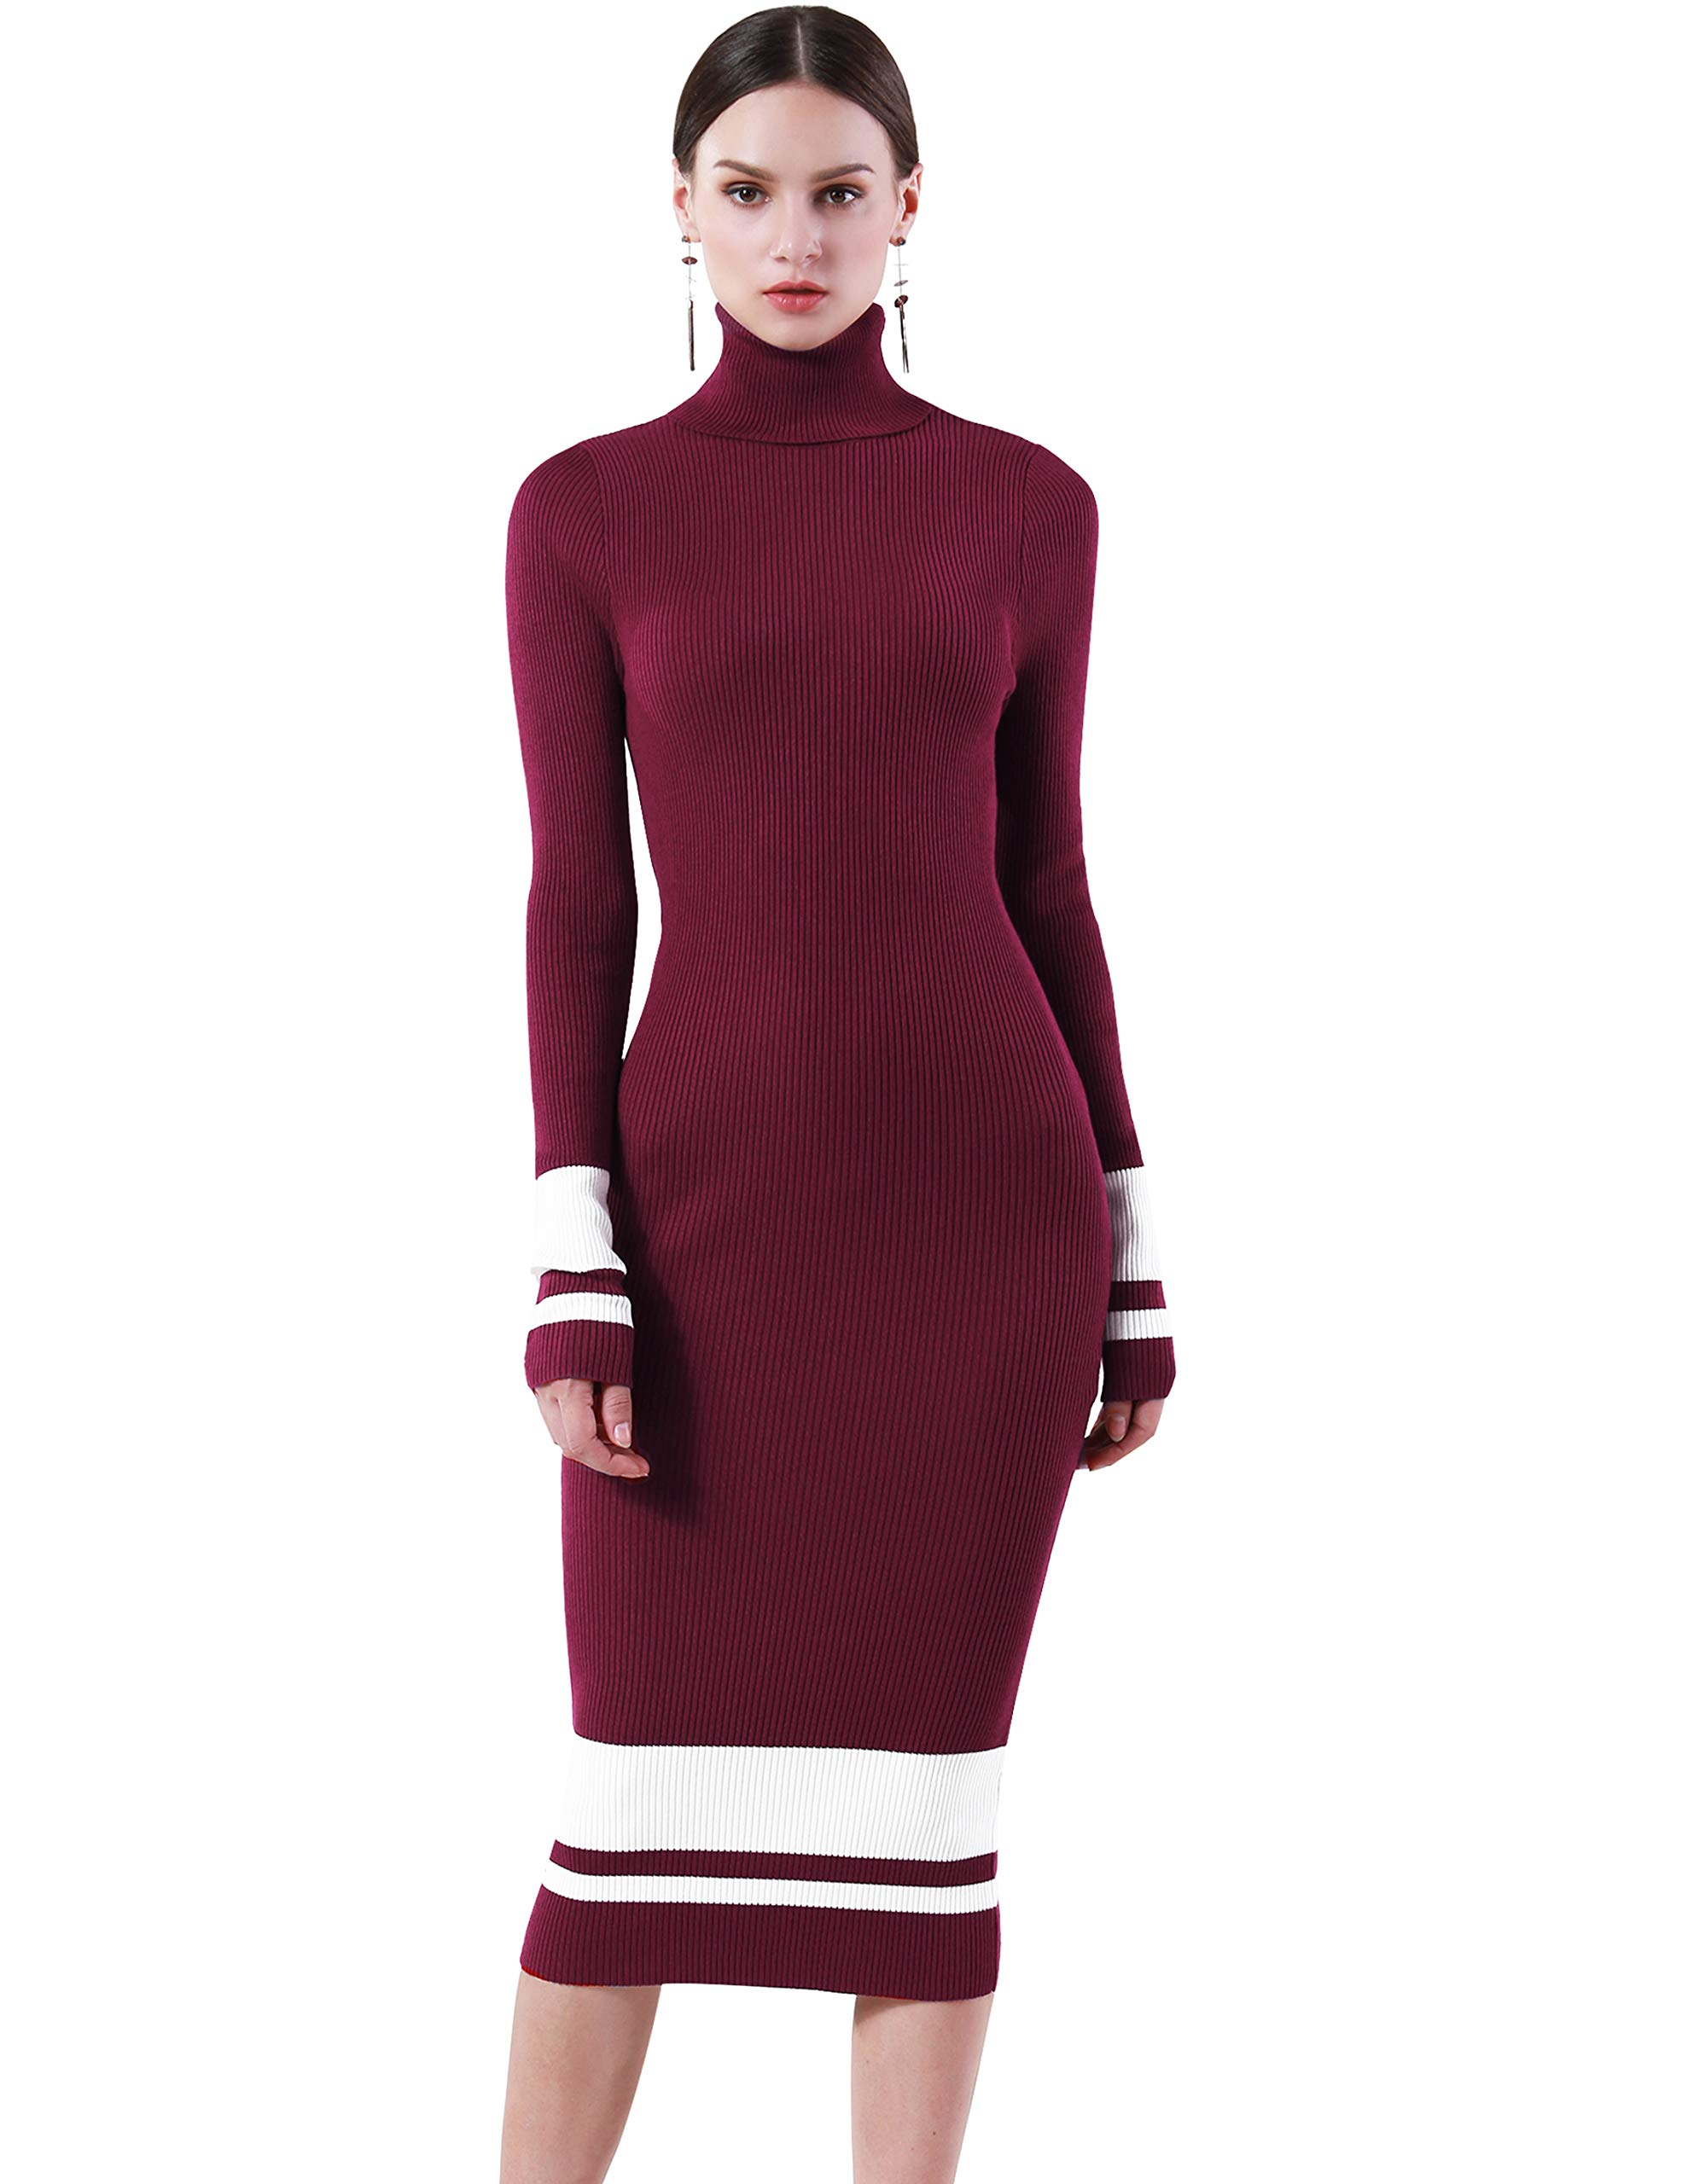 PrettyGuide Women Slim Fit Ribbed Turtleneck Long Sleeve Midi Knit Sweater Dress Burgundy with White L by PrettyGuide